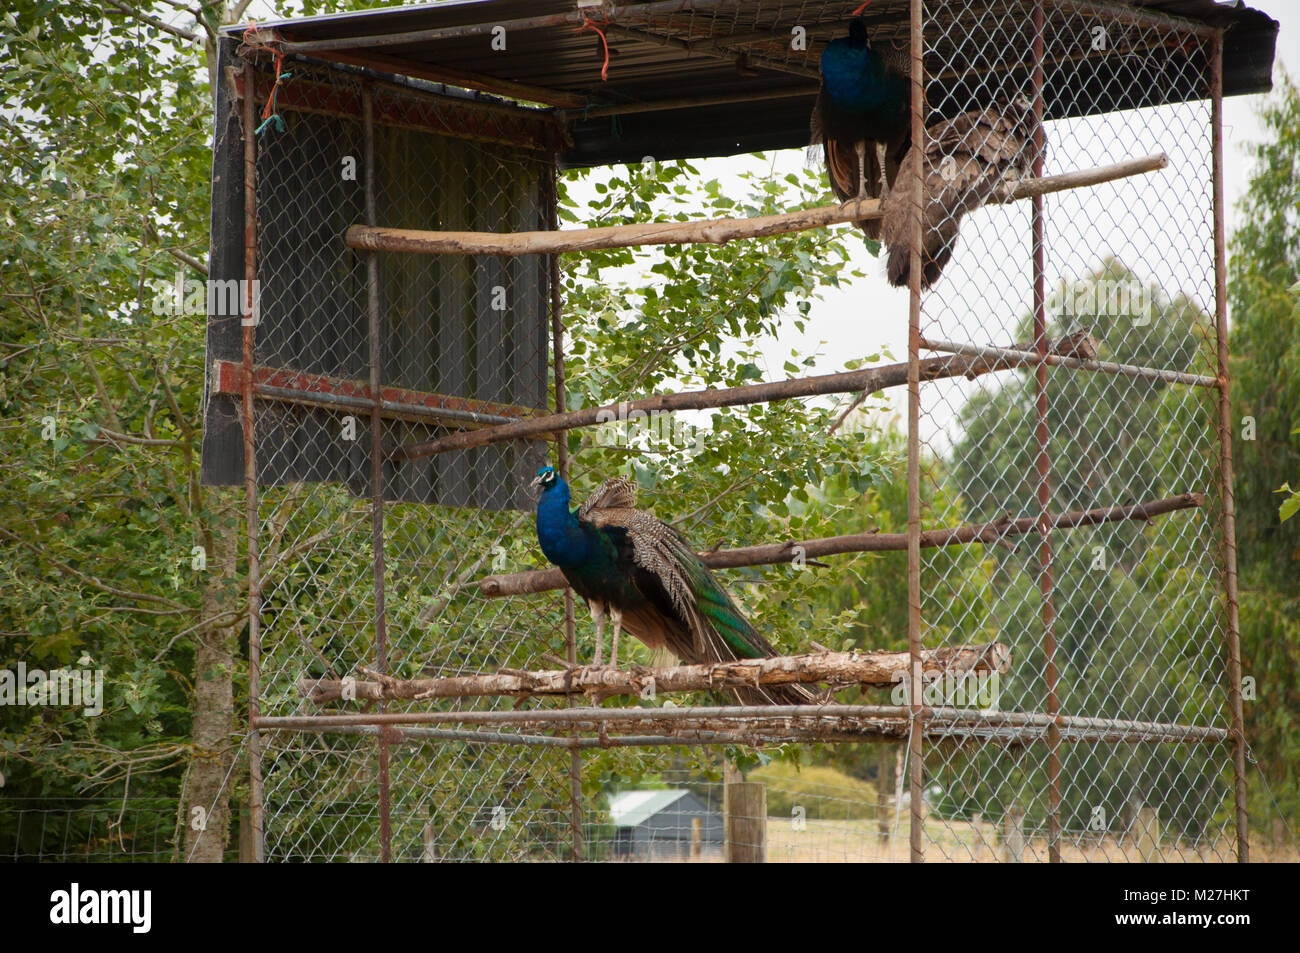 Peacocks In A Cage - Stock Image